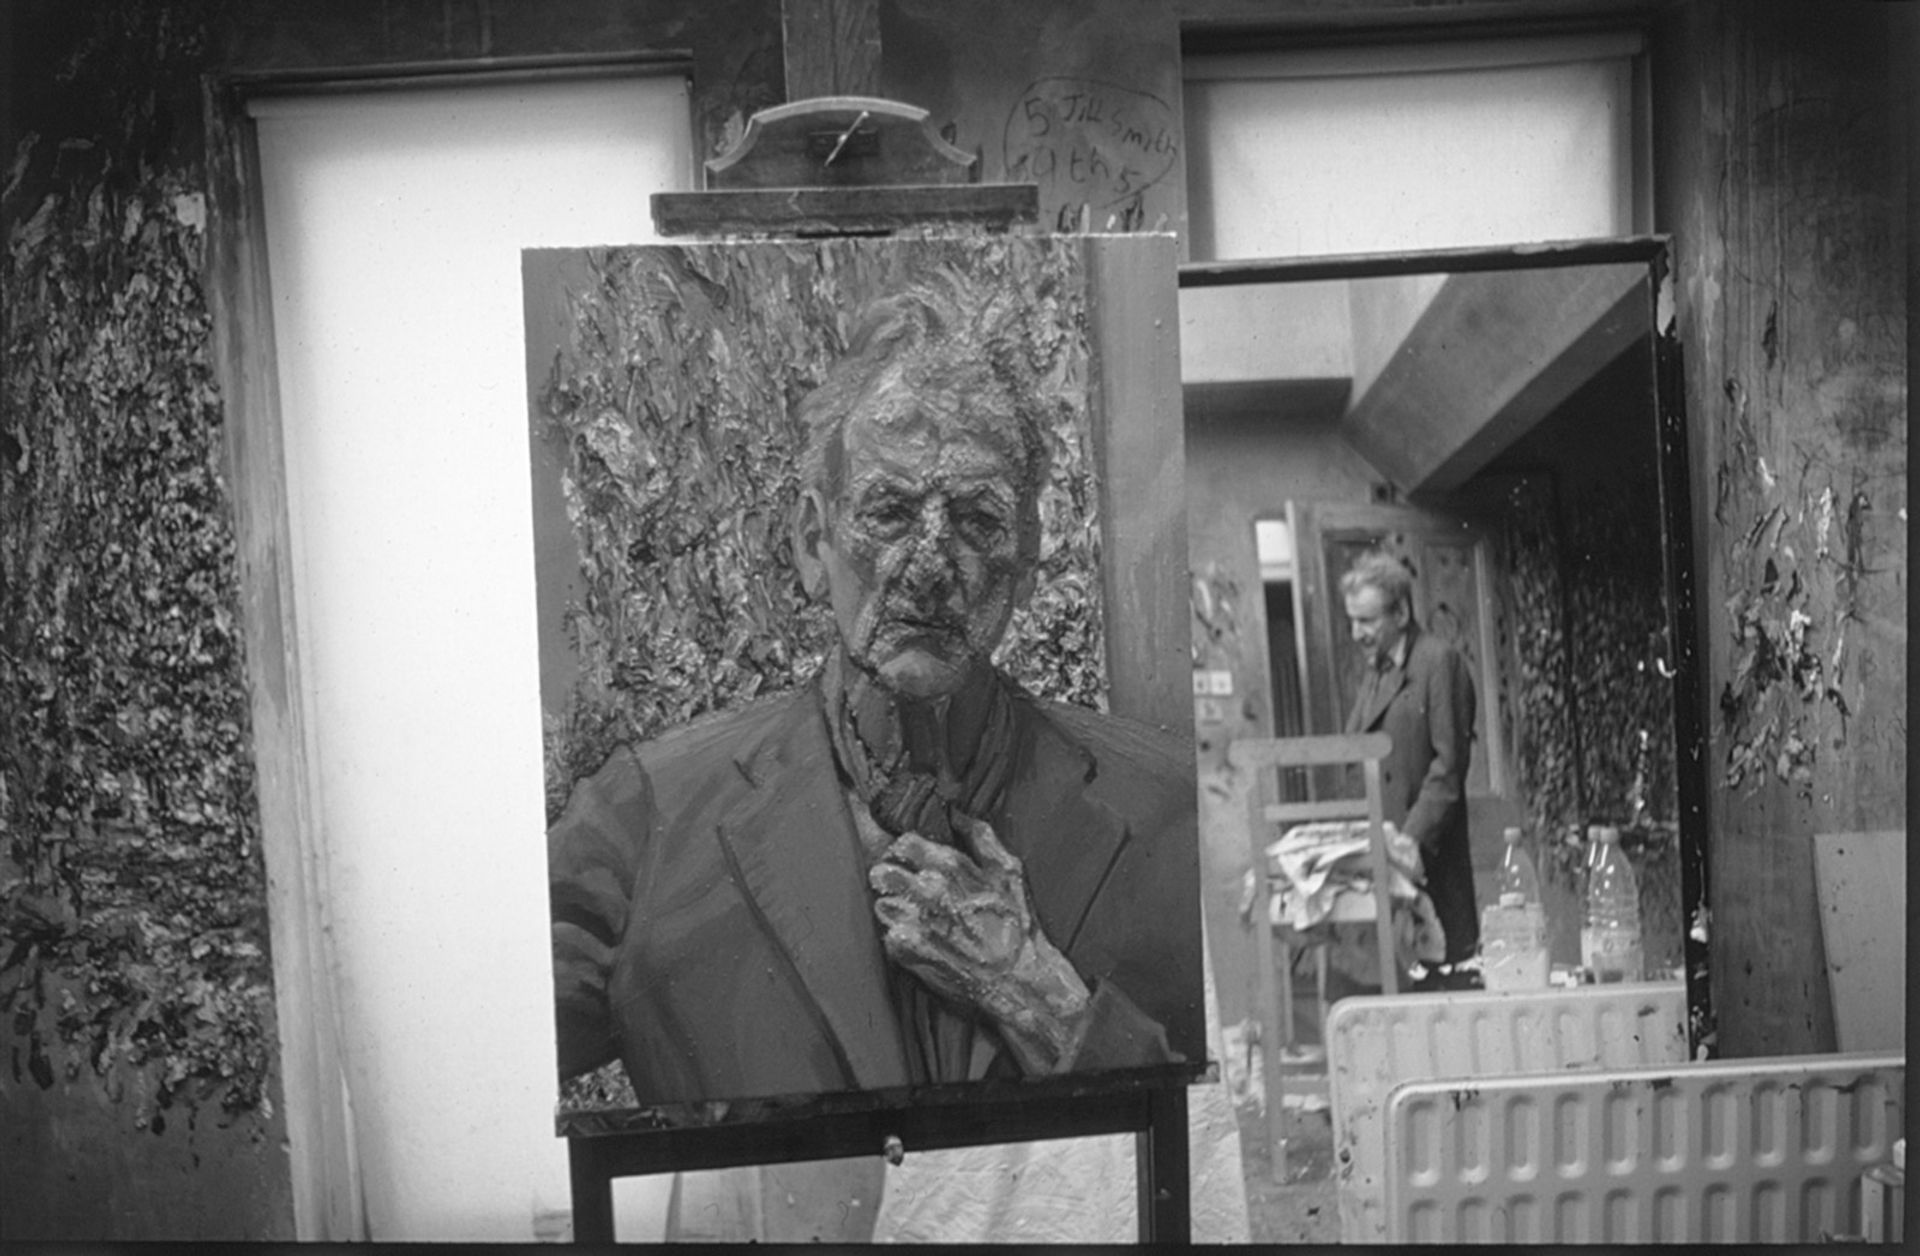 Lucian Freud's painting Self-portrait, Reflection (2002) with the artist reflected in a mirror in the background © William Feaver